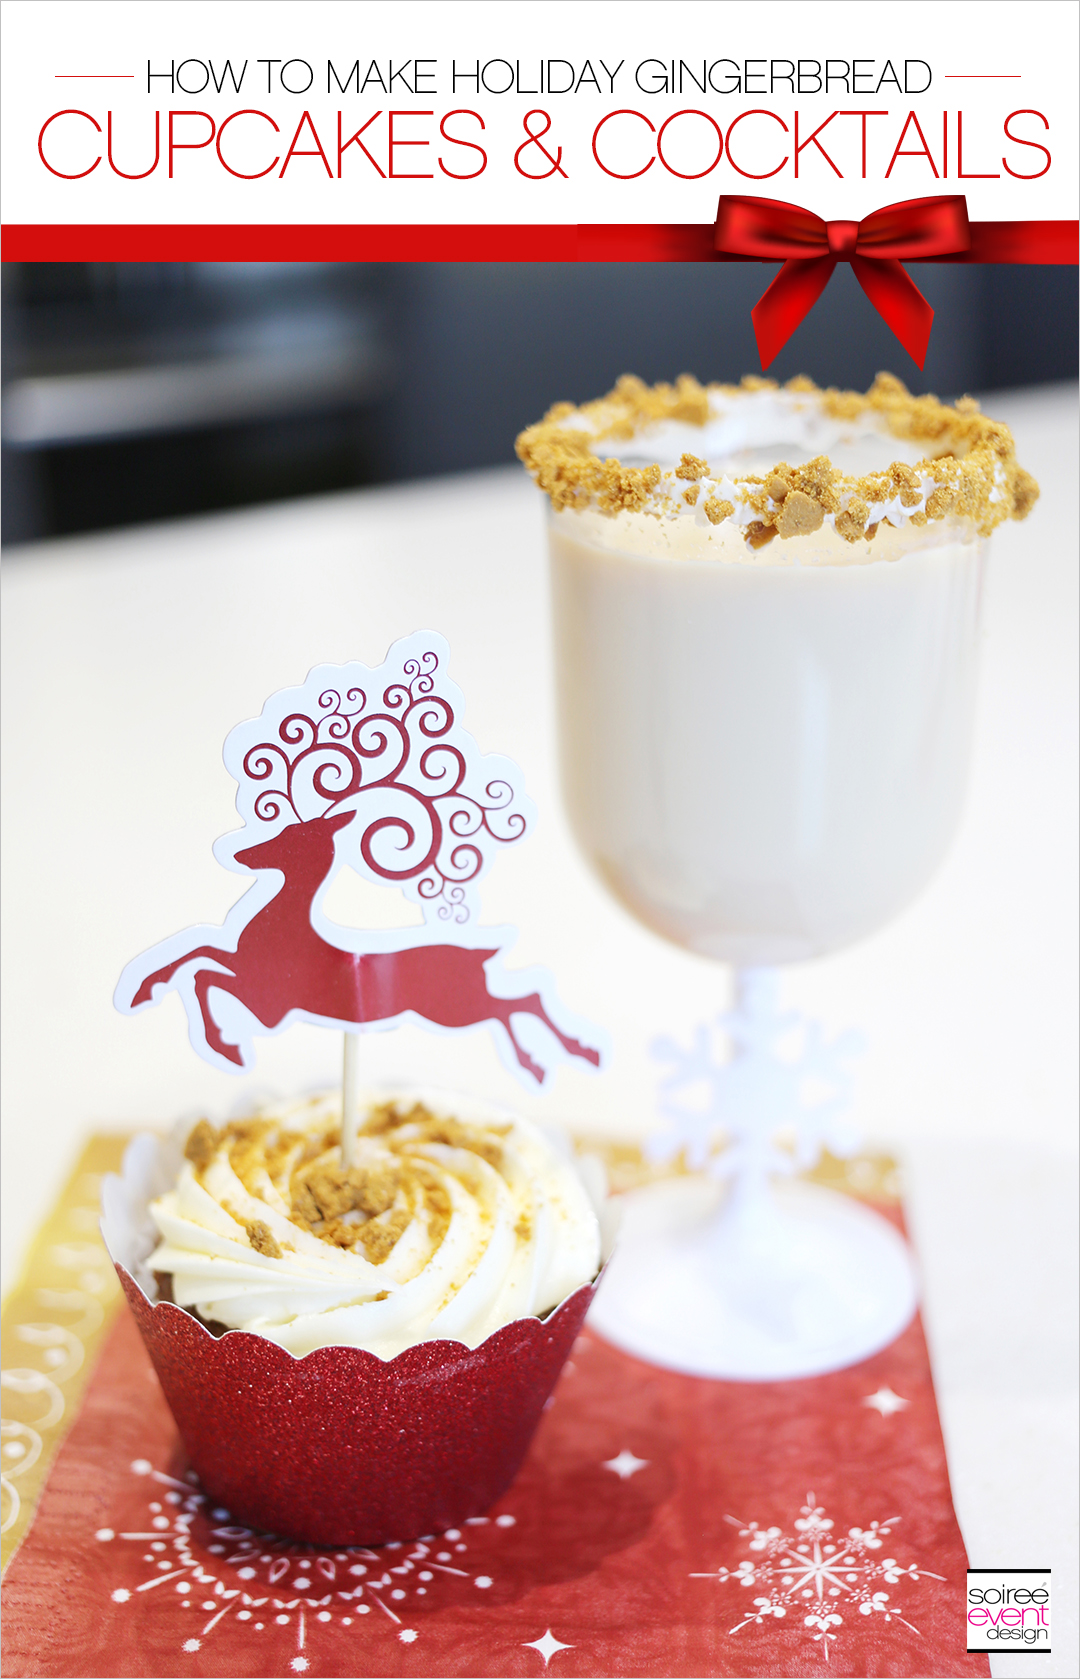 Holiday Cupcakes and Cocktails, Holiday Gingerbread Cupcakes and Gingerbread Cocktails